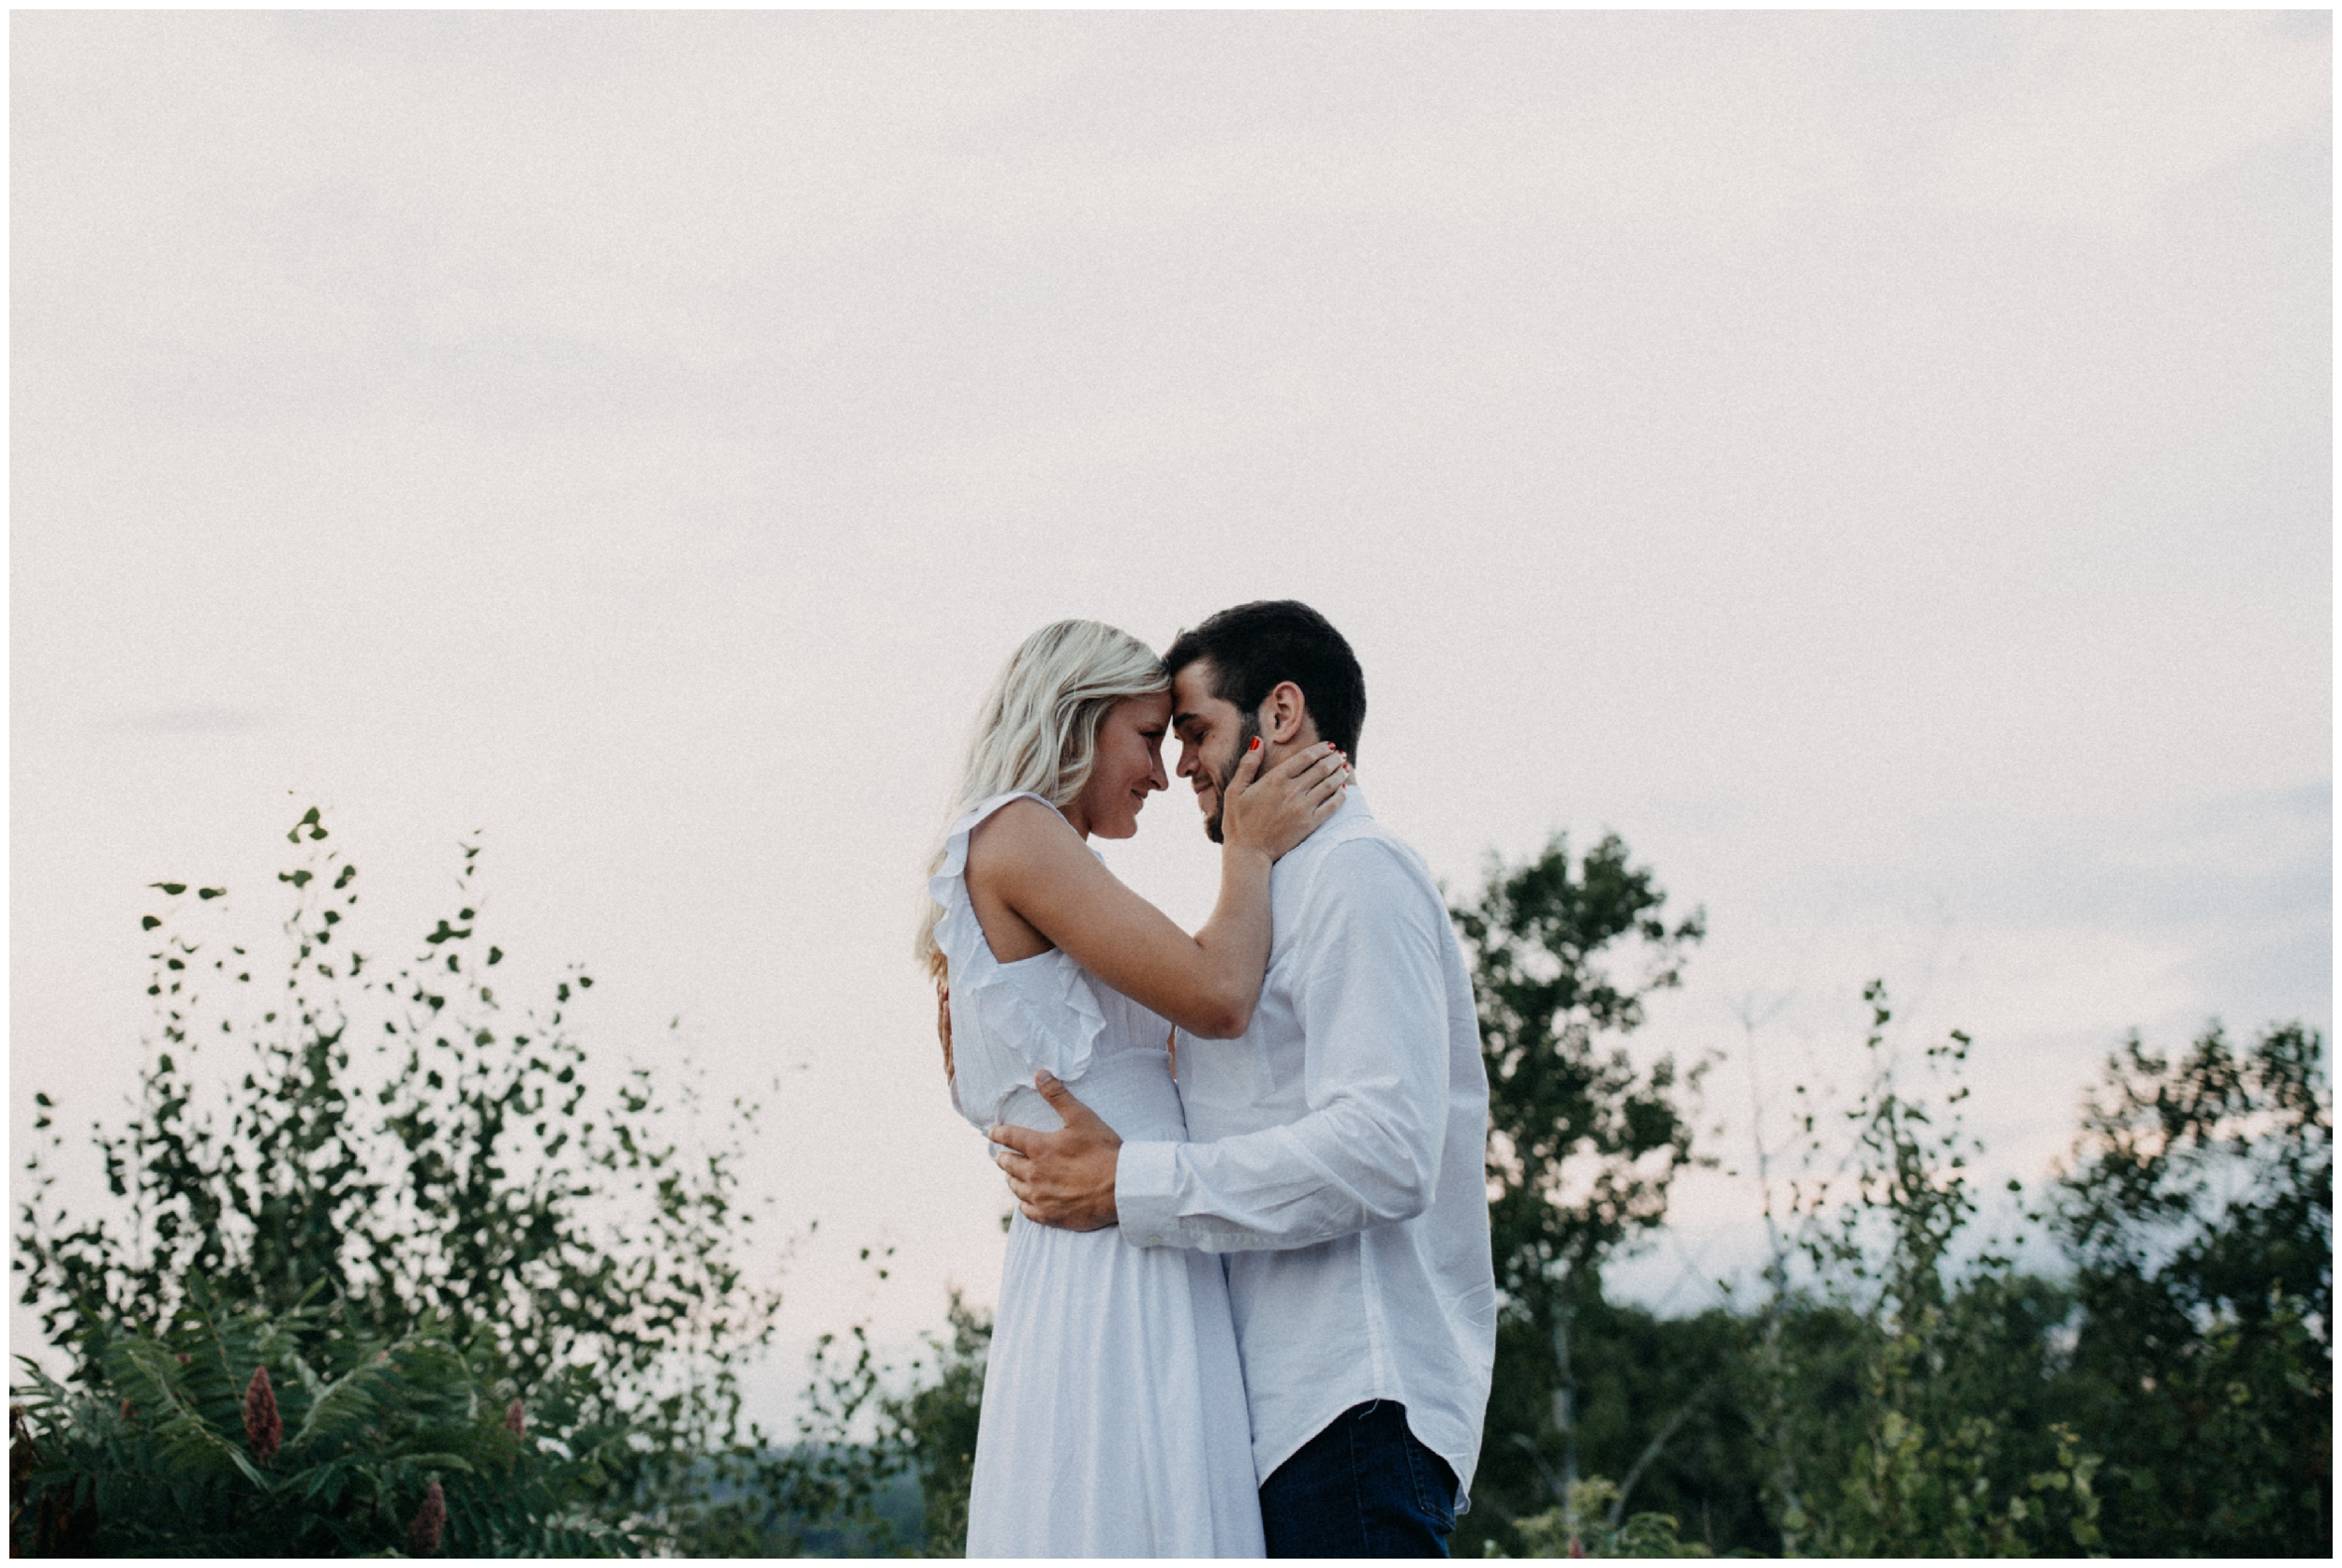 Summer sunset engagement session on Miner's Mountain in Crosby Minnesota